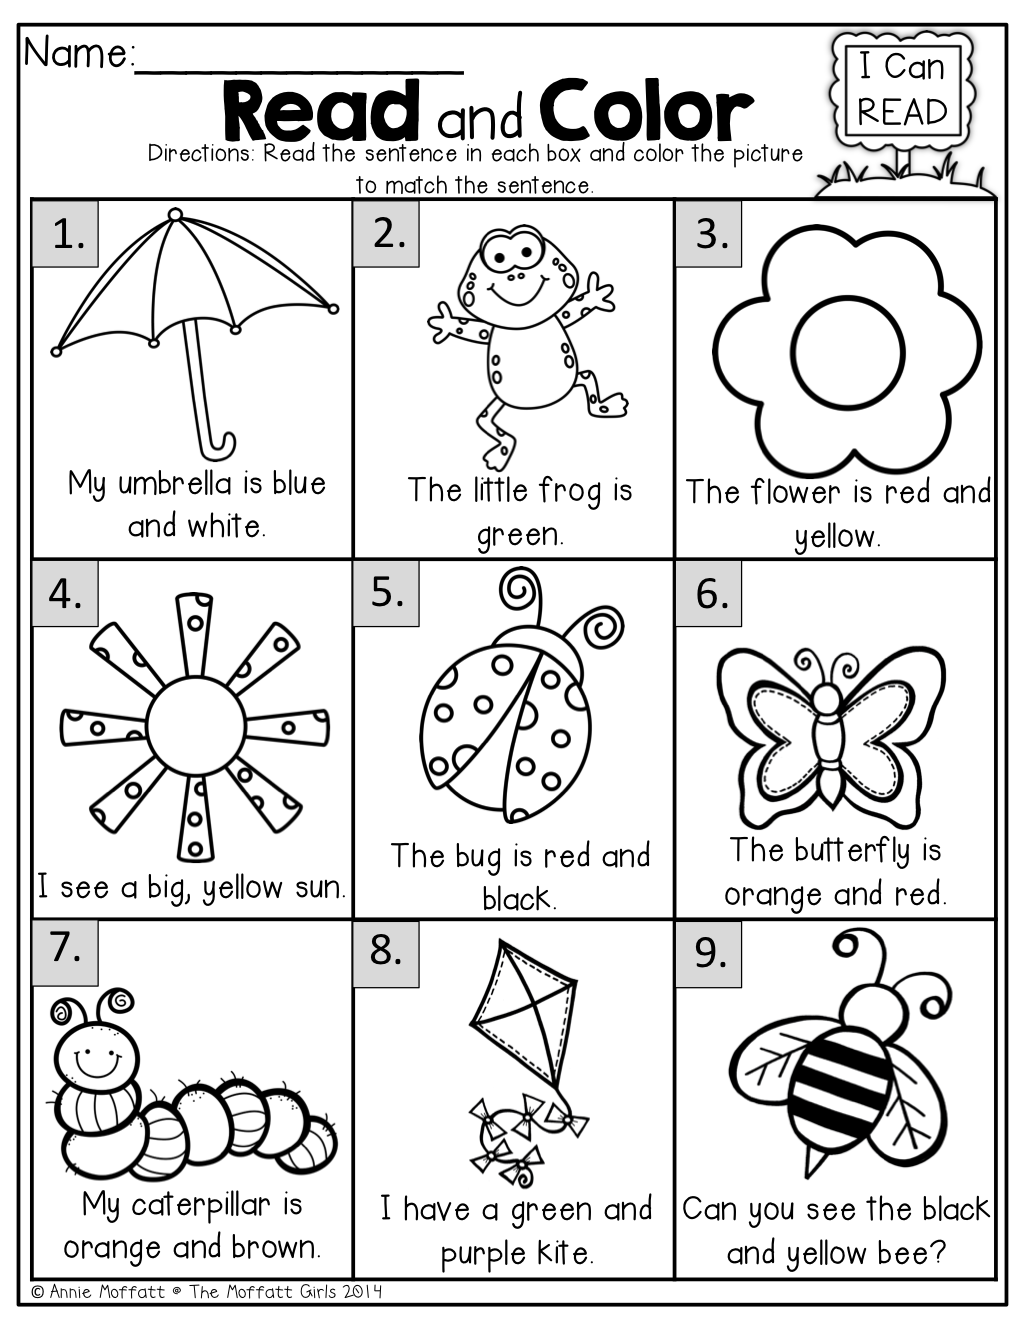 Coloring games in english - Read And Color Read The Simple Sentence And Color Correctly